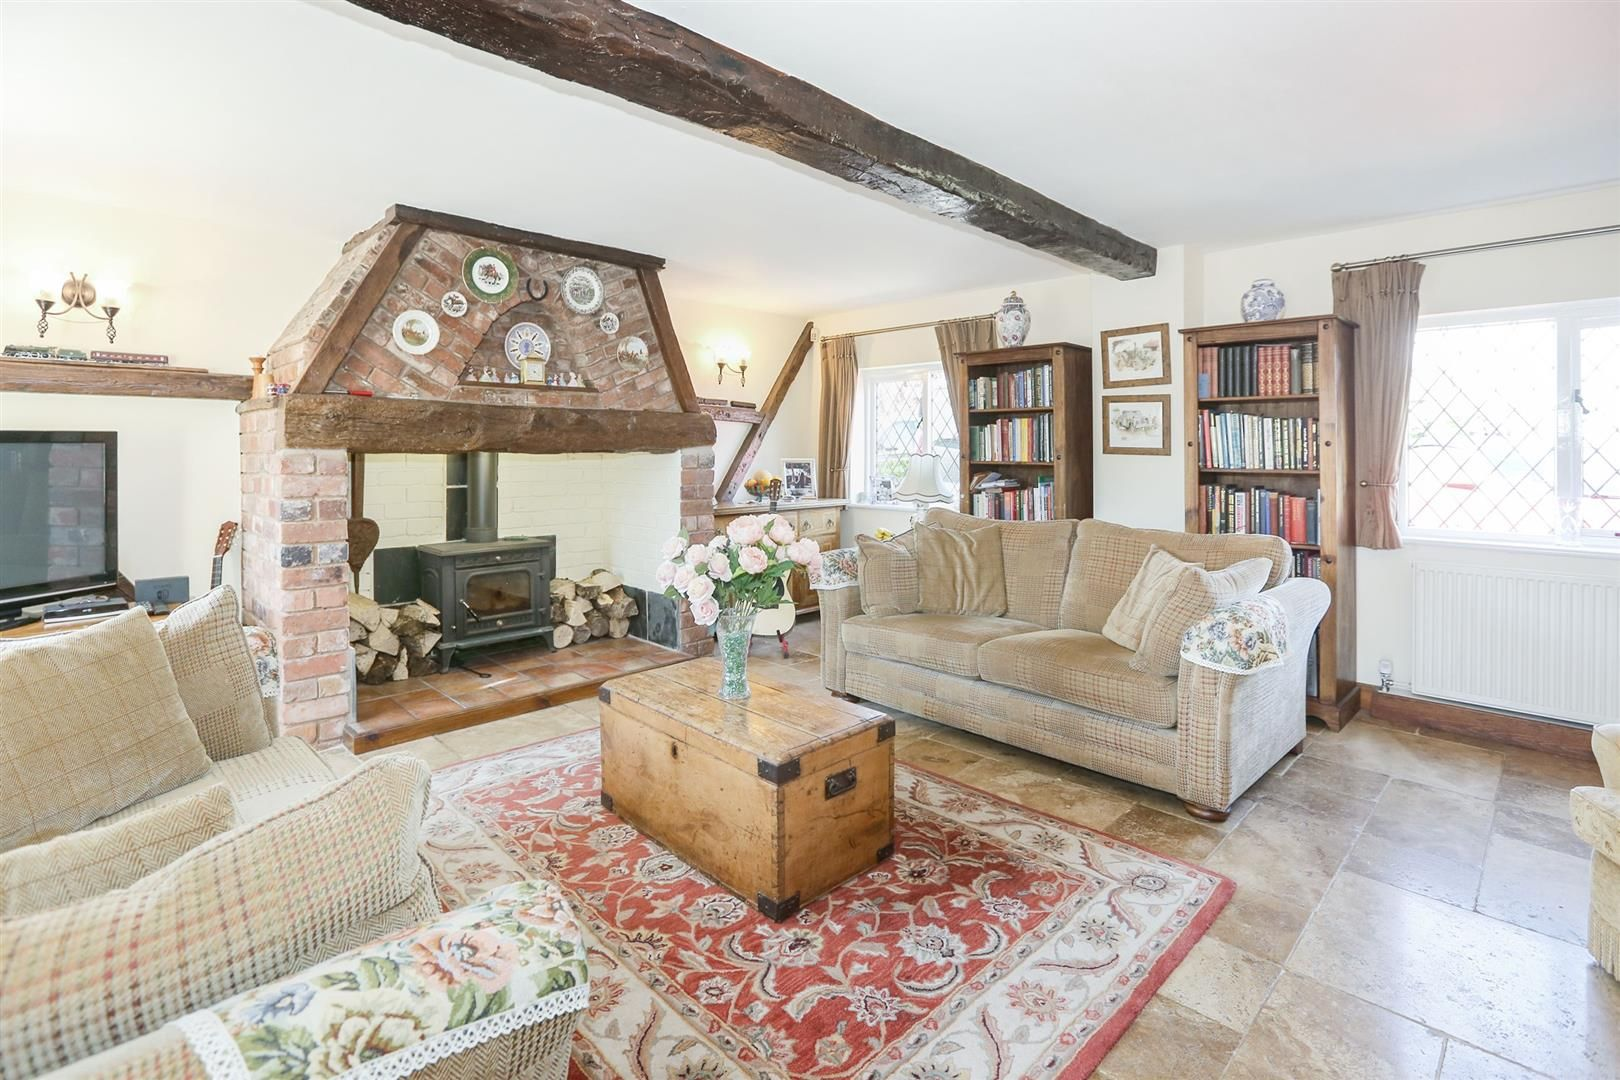 3 bed house for sale in Hagley  - Property Image 2